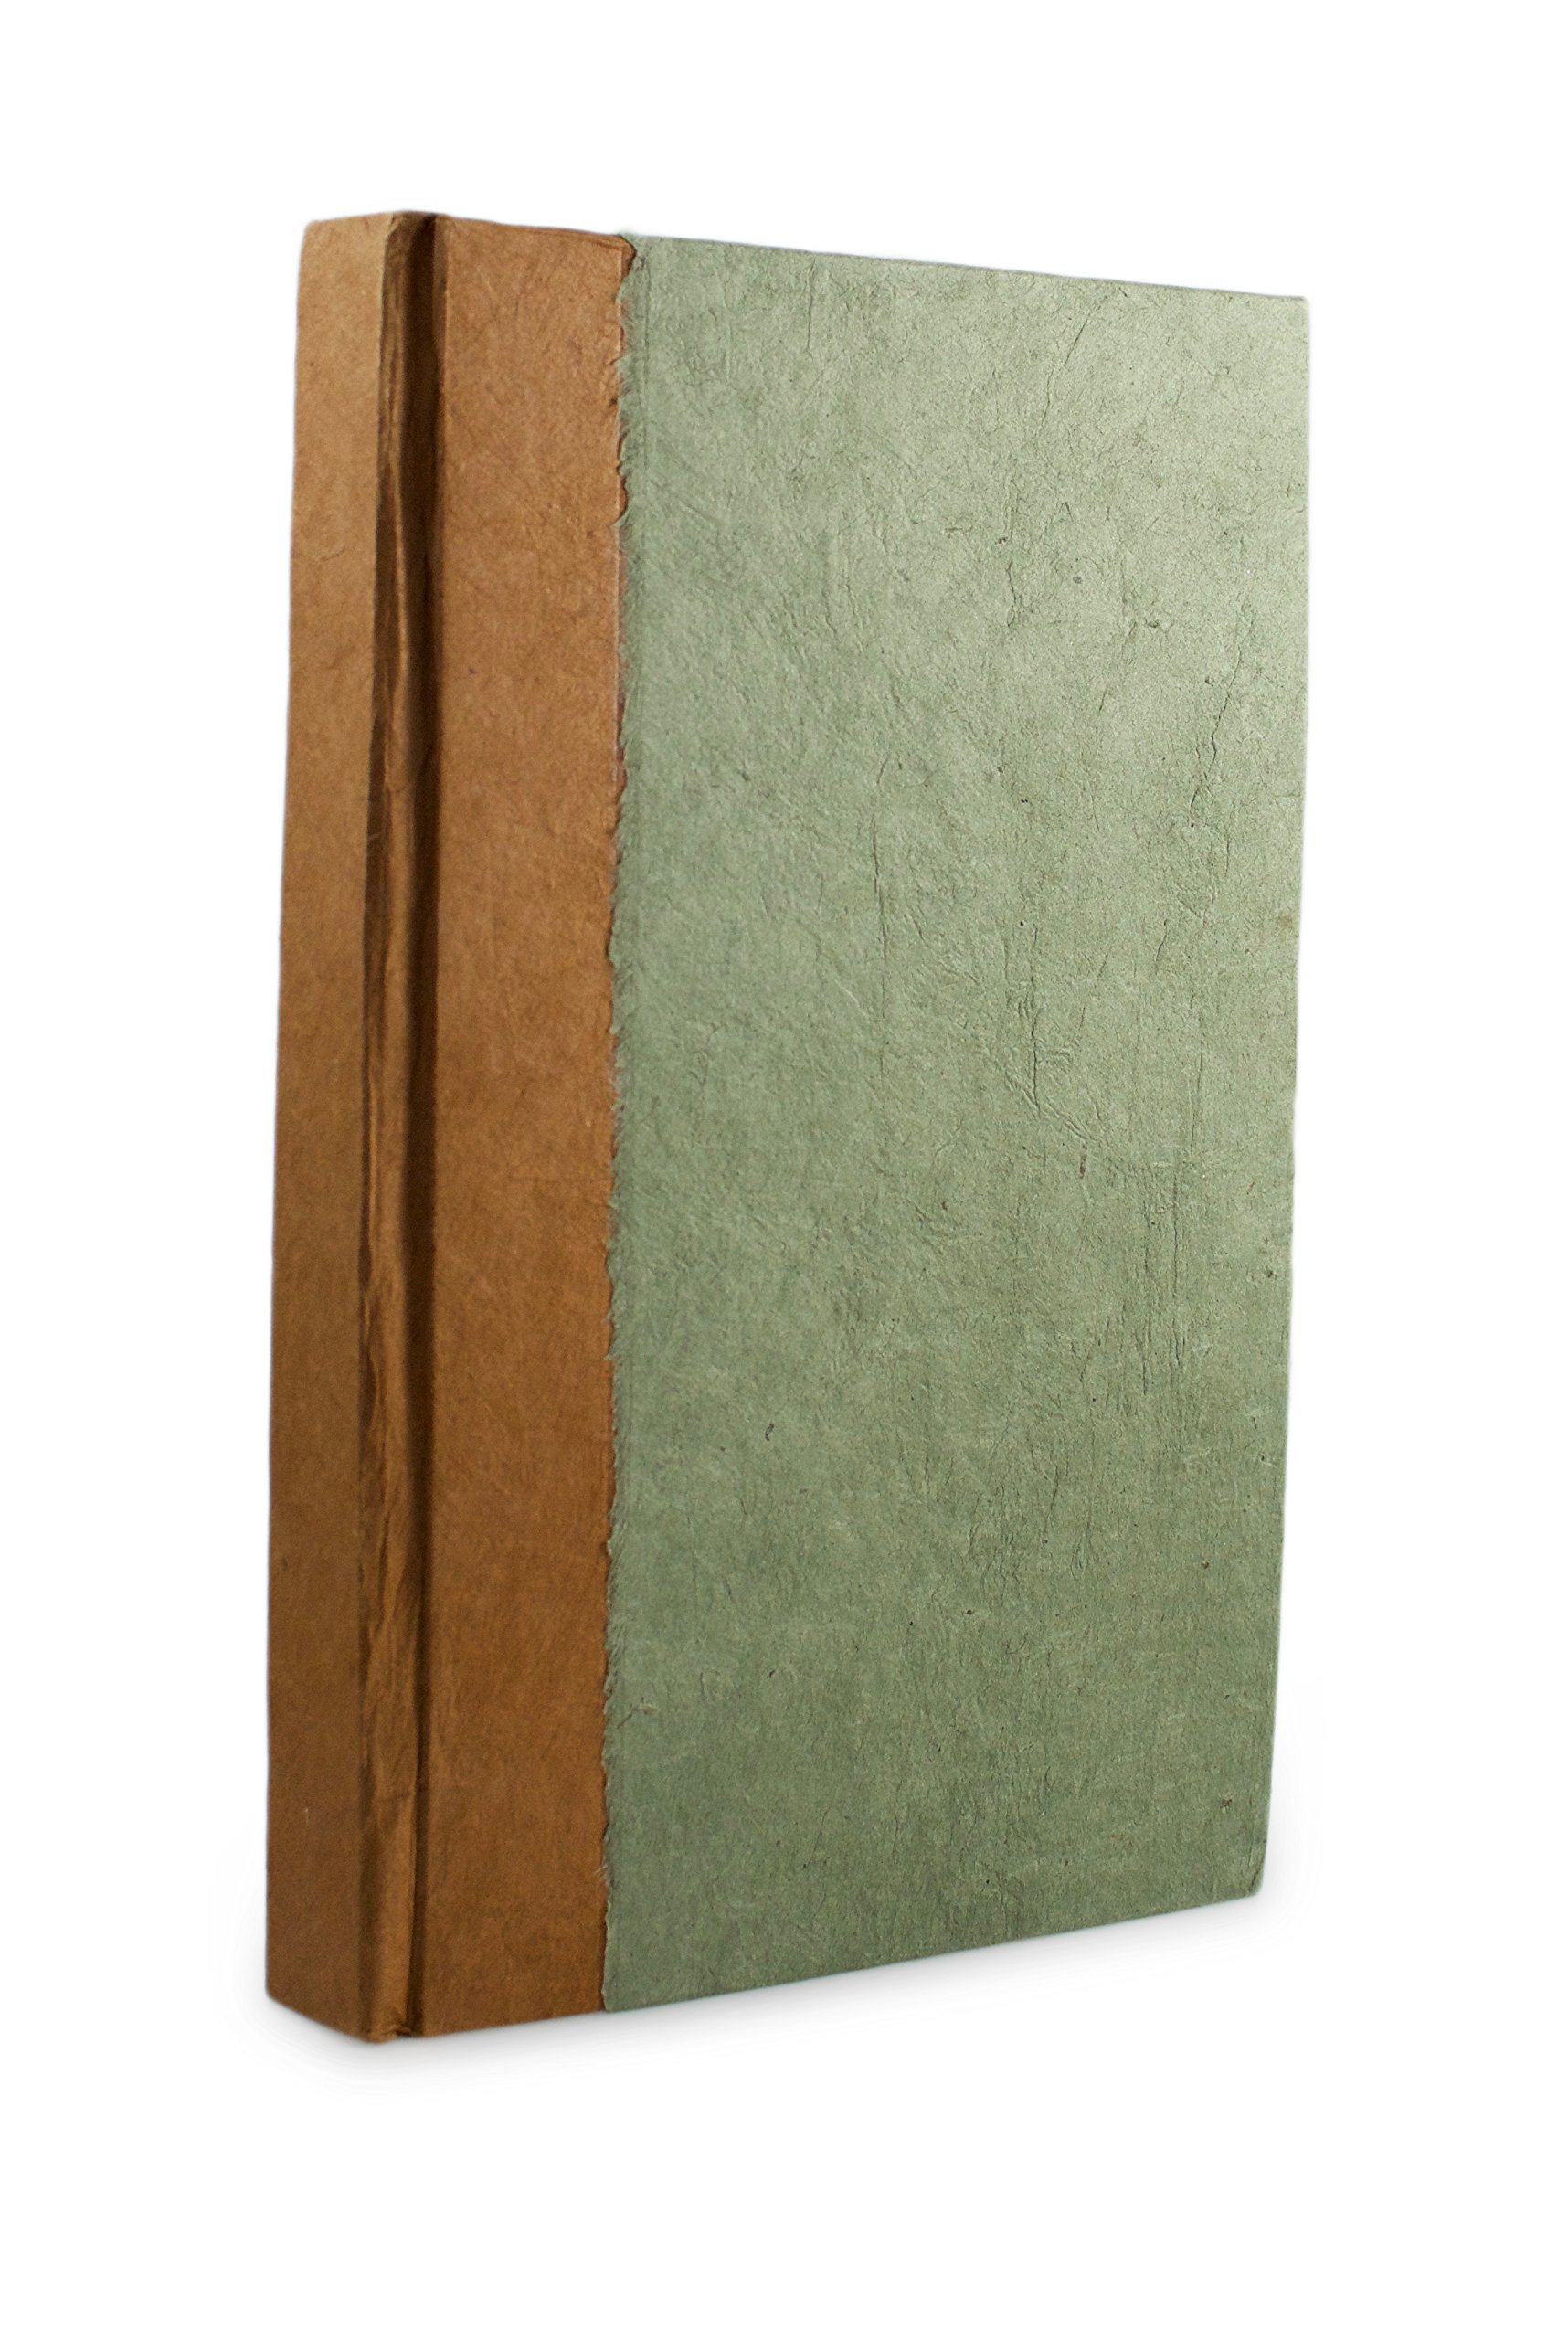 Nepali Namaste Writing & Prayer Journal with Handmade Vintage Lokta Paper & Vegetable-Dyed Hardcover, Made in the Himalayas of Nepal, 6x9 inches, Sage